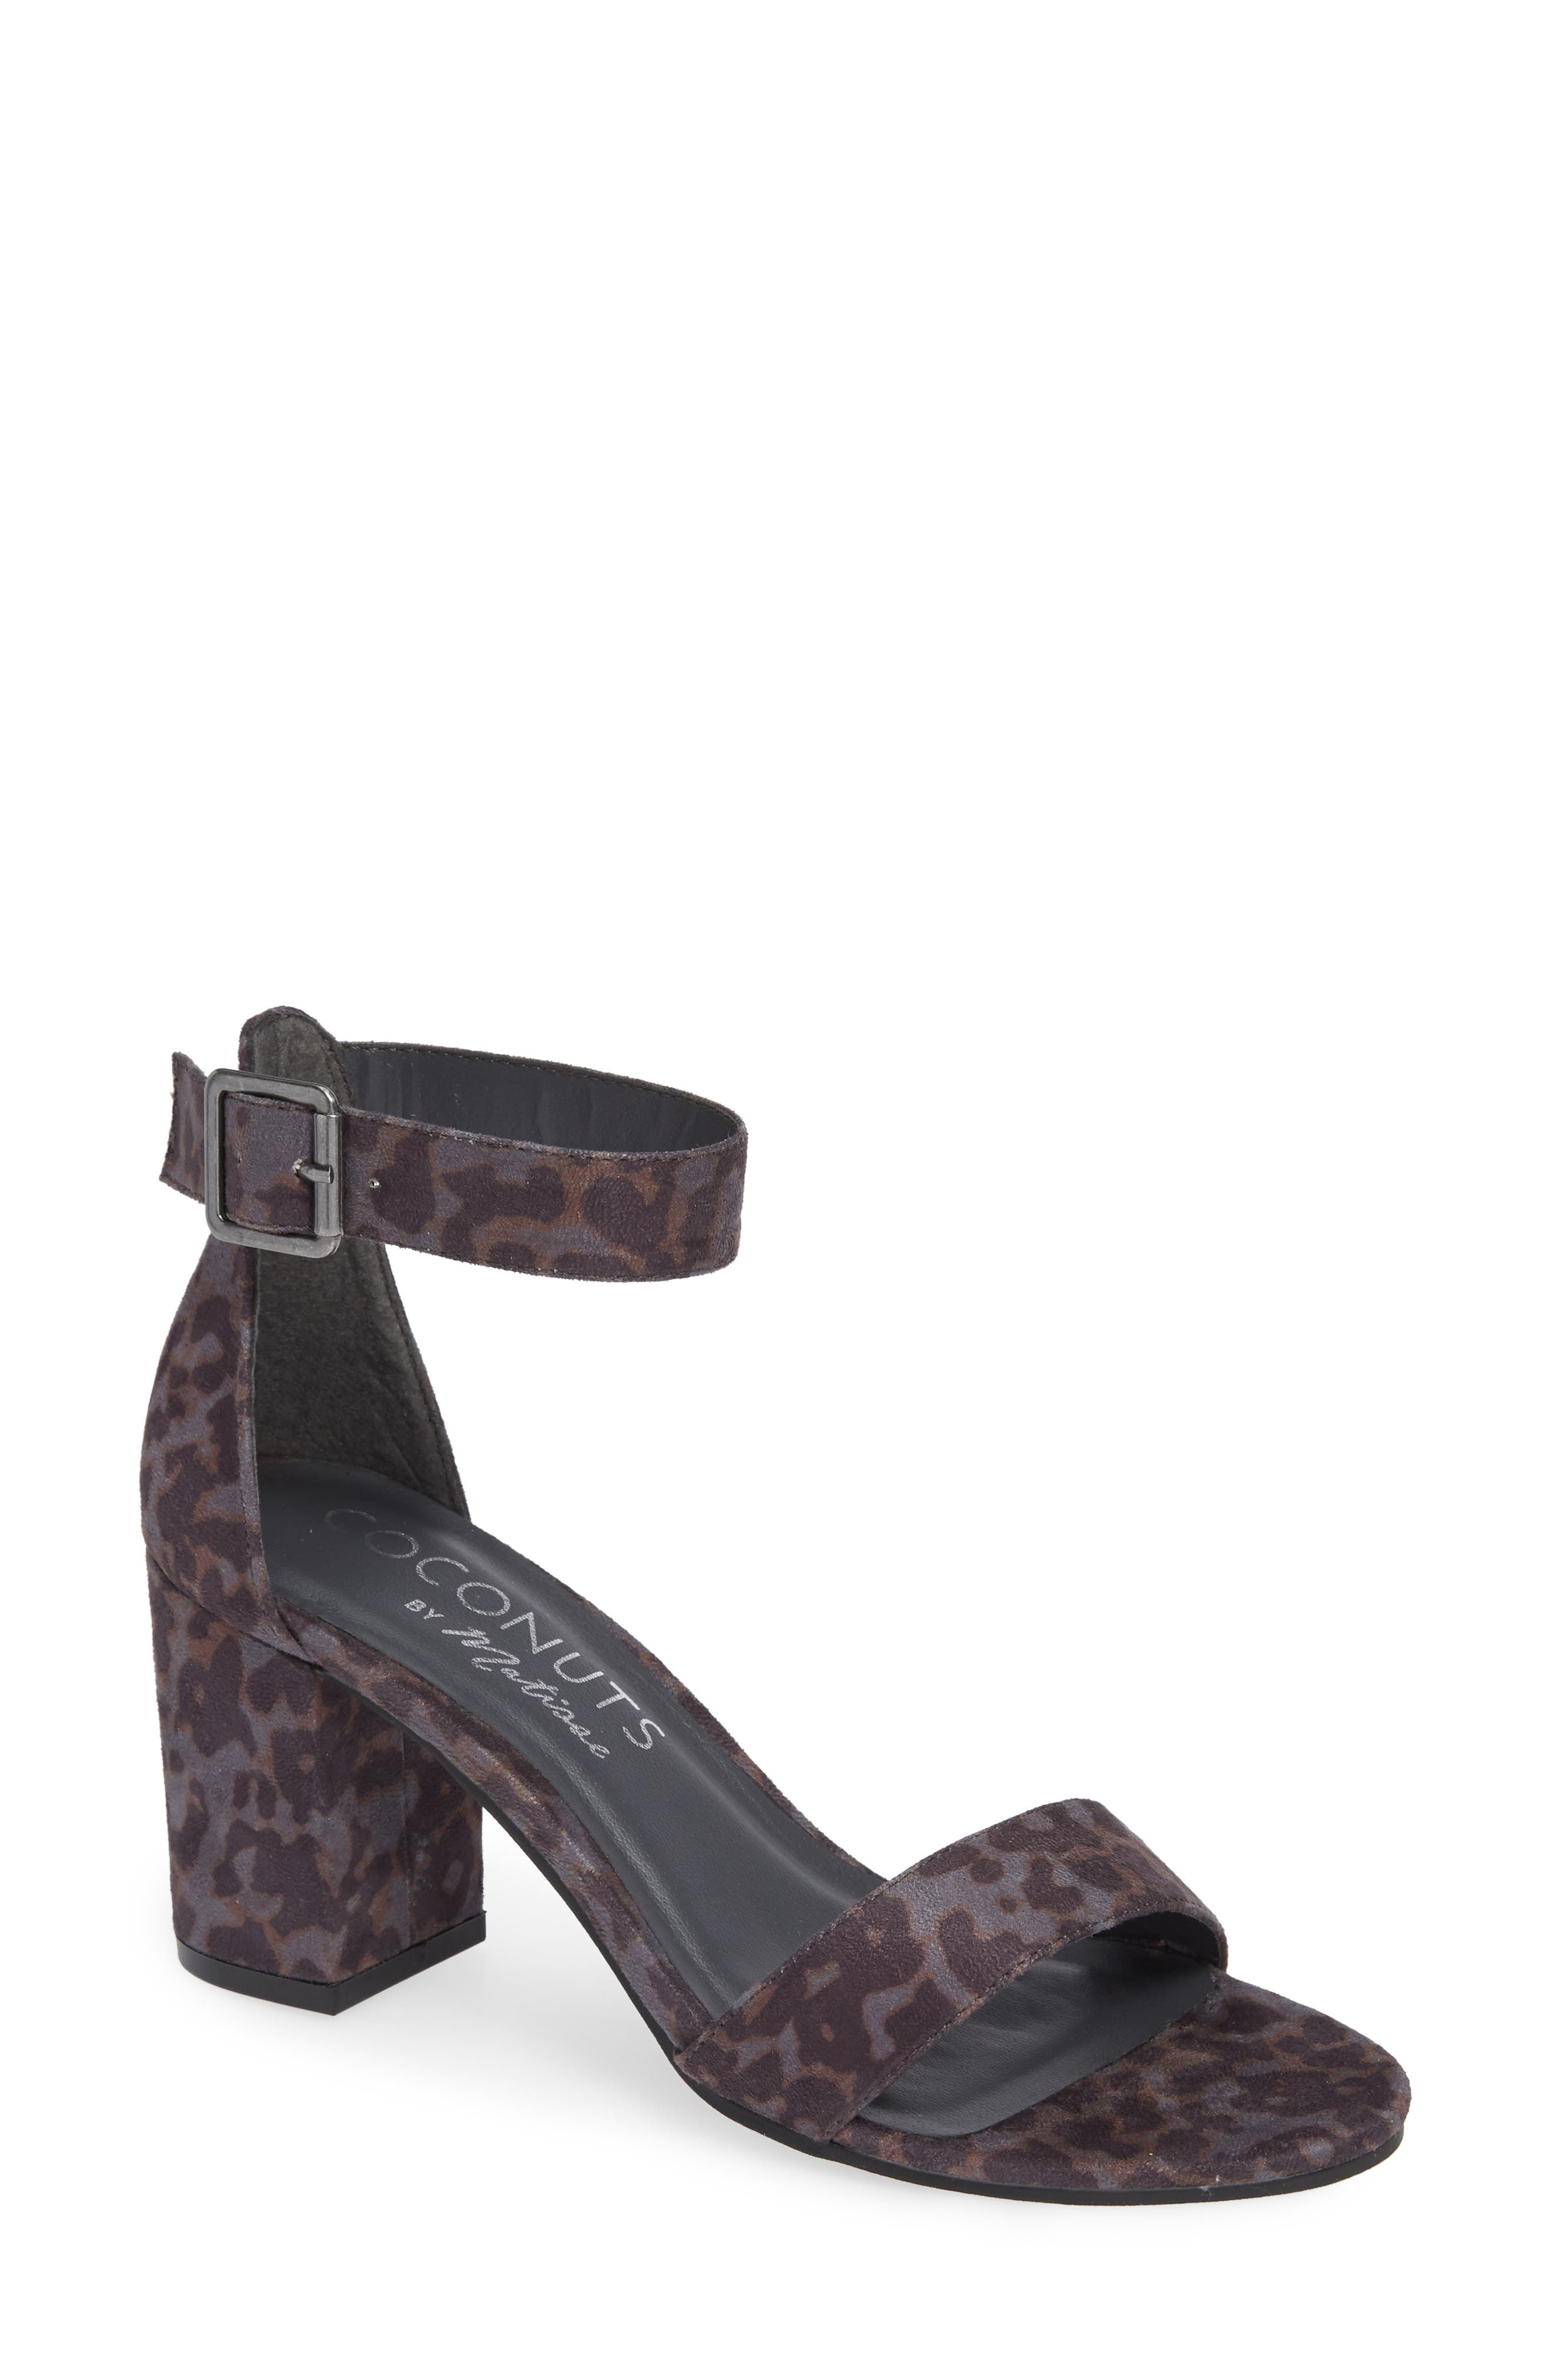 COCONUTS BY MATISSE,                             Sashed Sandal,                             Main thumbnail 1, color,                             028